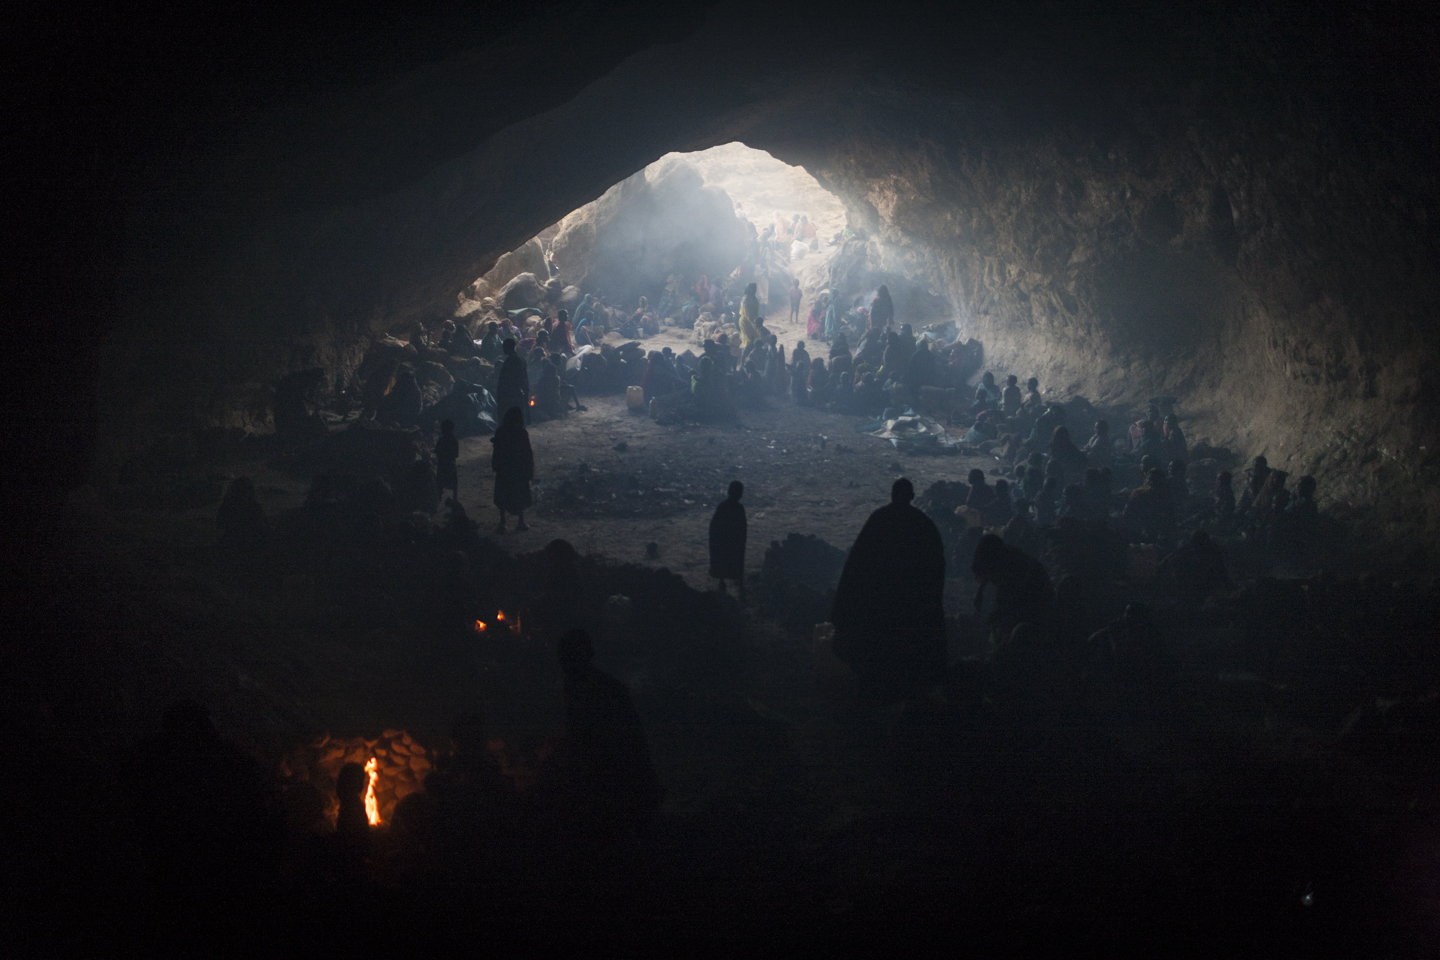 Hundreds of women and children seek shelter in a cave from the bombing by the Sudanese government's forces outside of the town of Sarong in Central Darfur, Sudan, March 2, 2015.